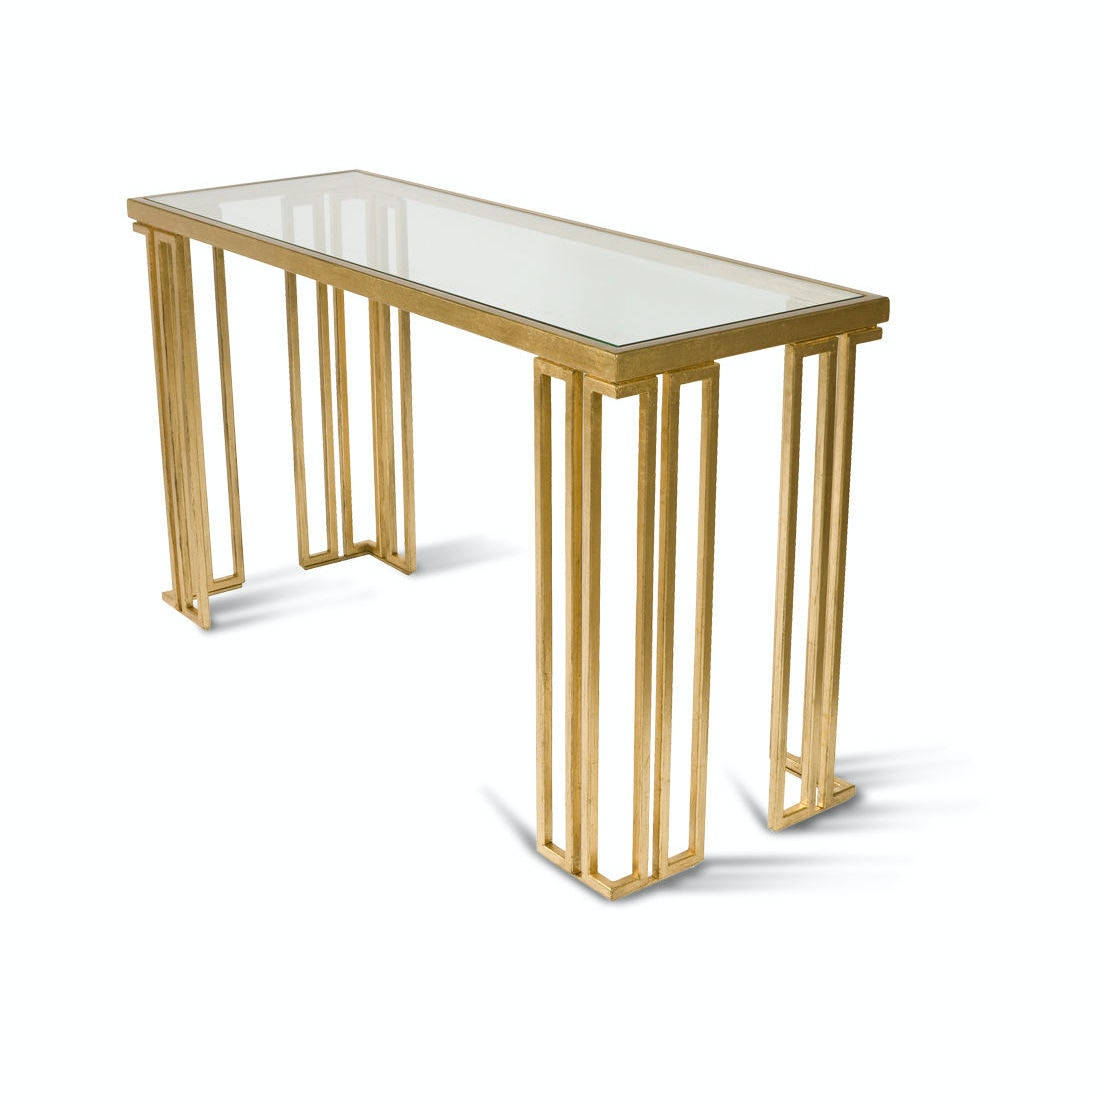 Lee Jofa Whitham Console Table Whitham/56